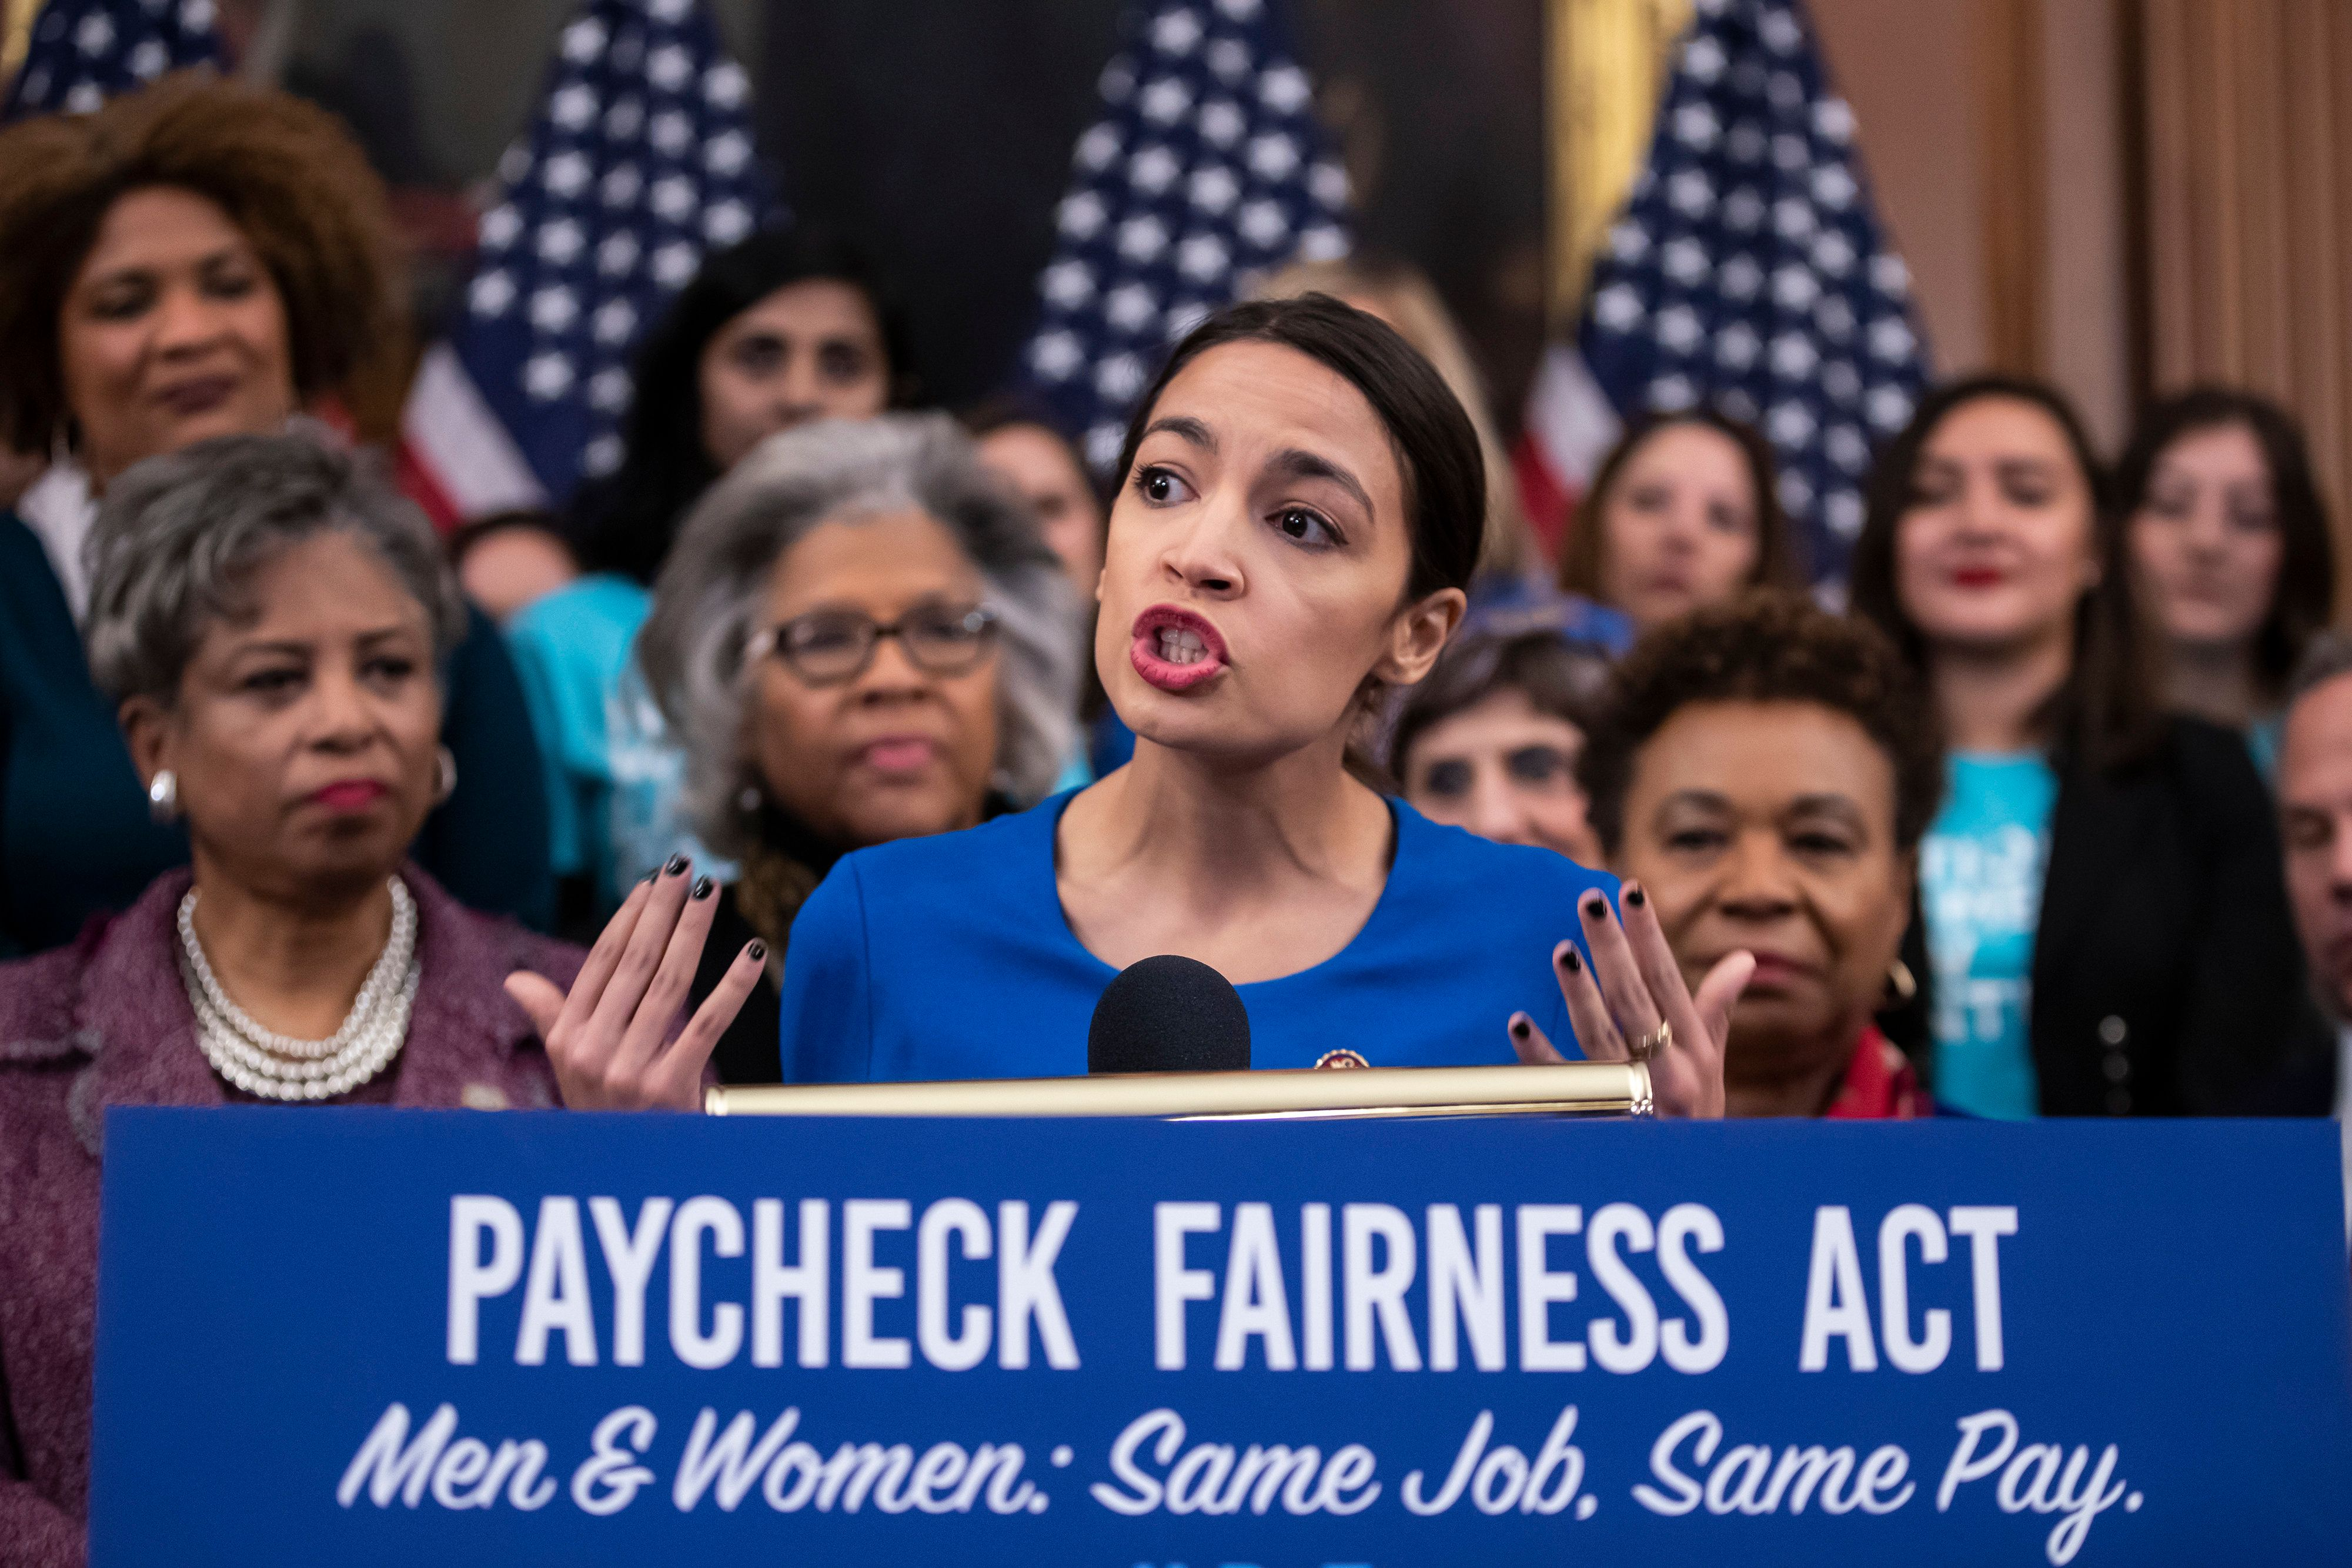 Rep. Alexandria Ocasio-Cortez (D-N.Y.) speaks at an event to advocate for the Paycheck Fairness Act on Capitol Hill on Wednes